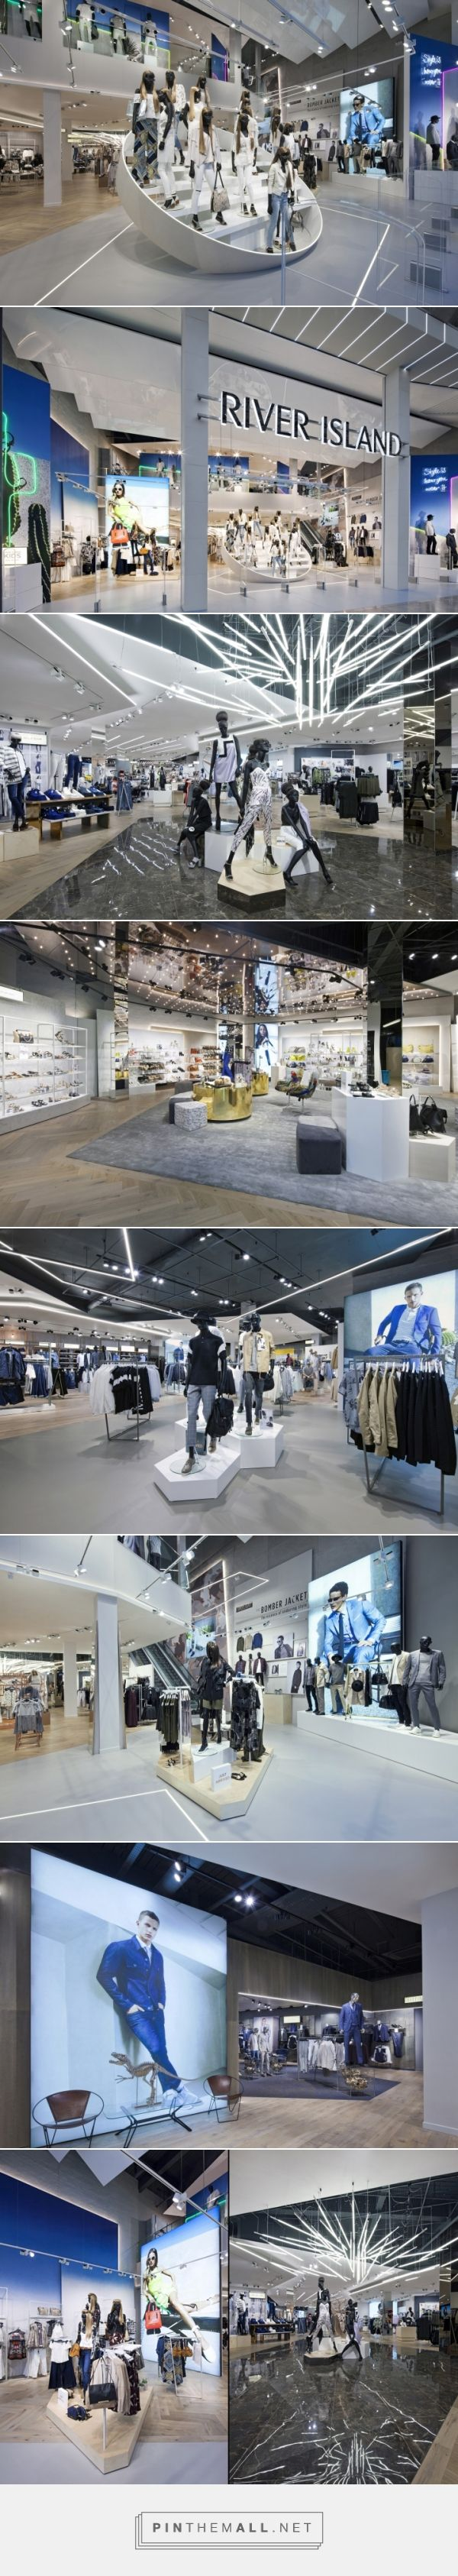 Store by riis retail aarhus denmark 187 retail design blog - River Island Flagship Store By Dalziel And Pow Birmingham Uk Retail Design Blog